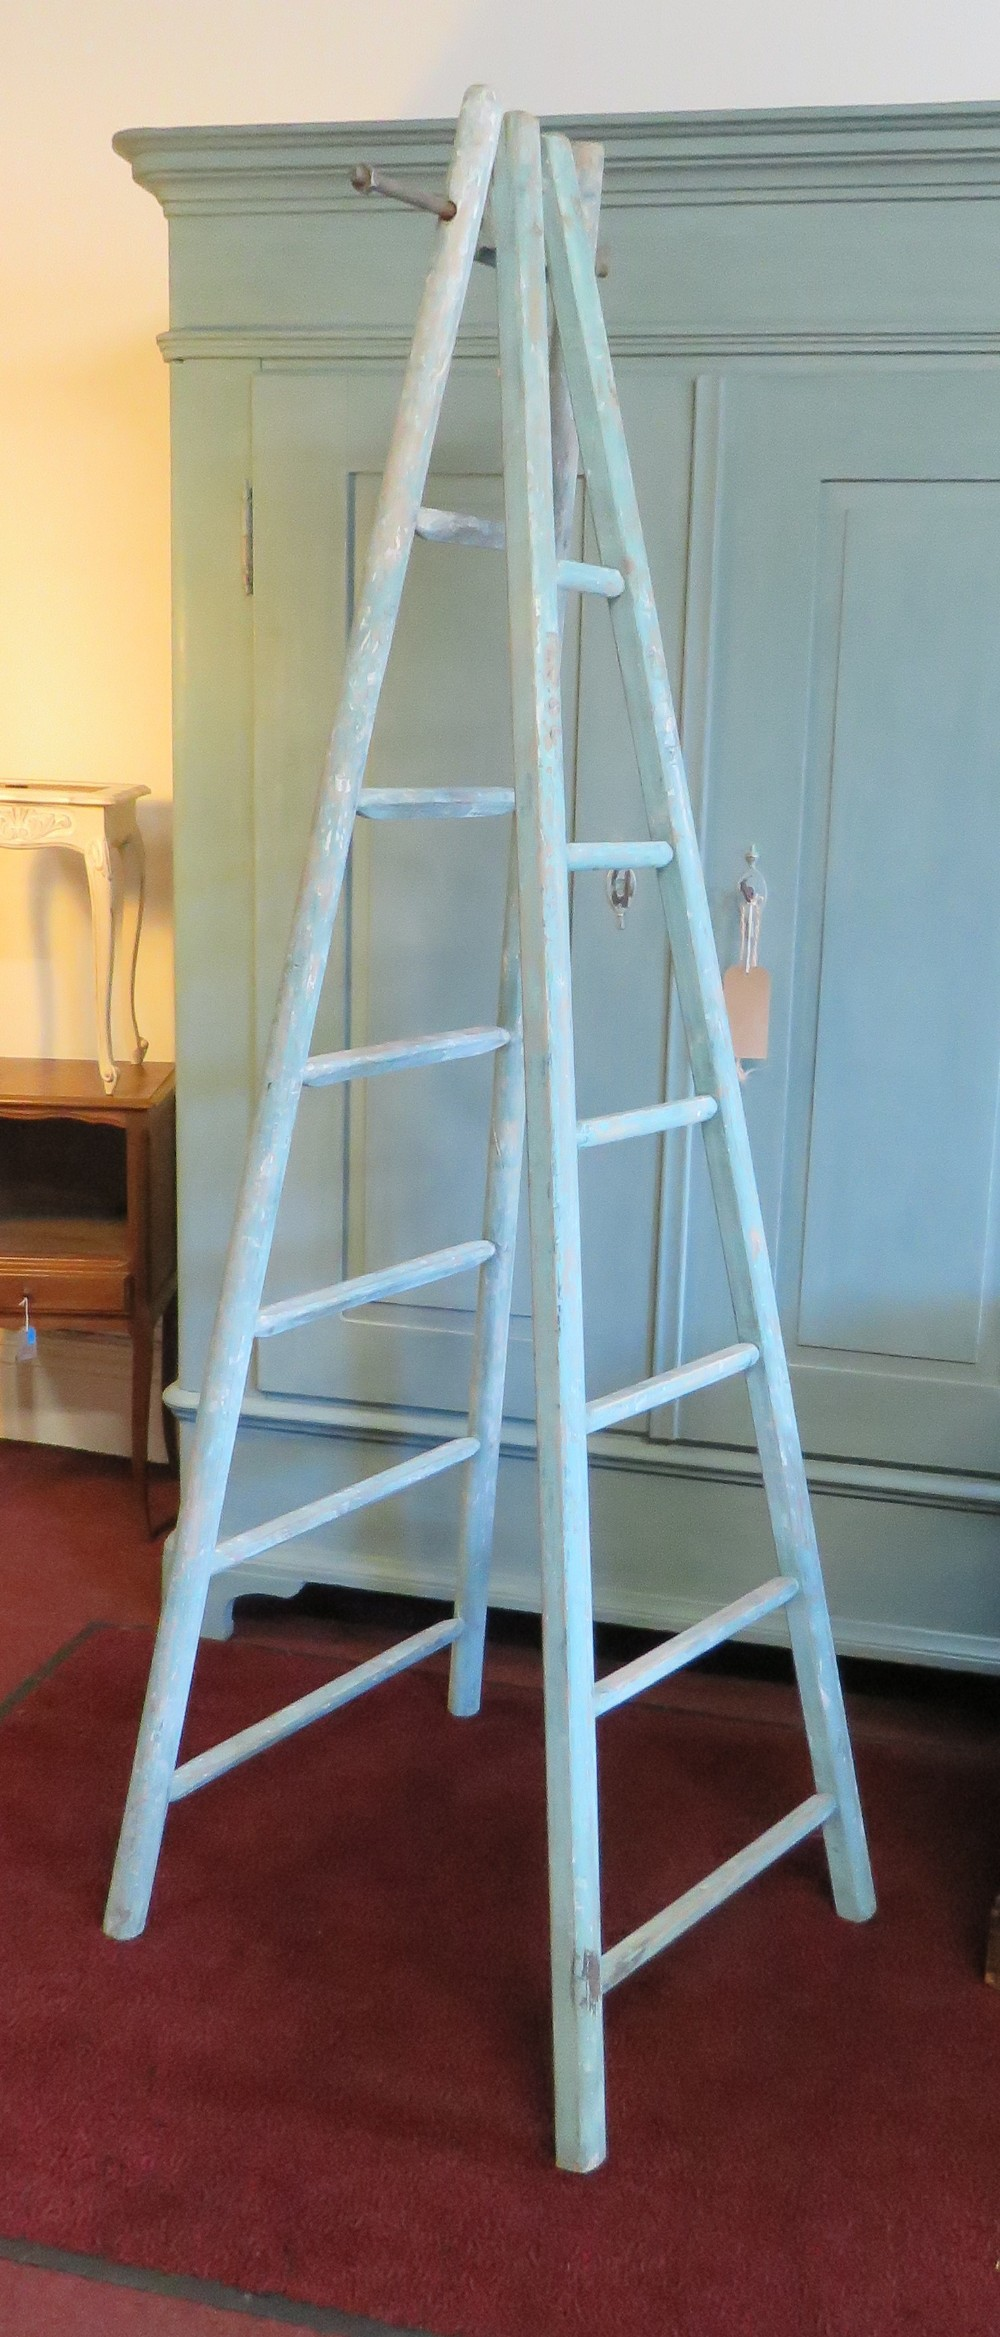 antique set of french fruit picking ladders in old distressed paint